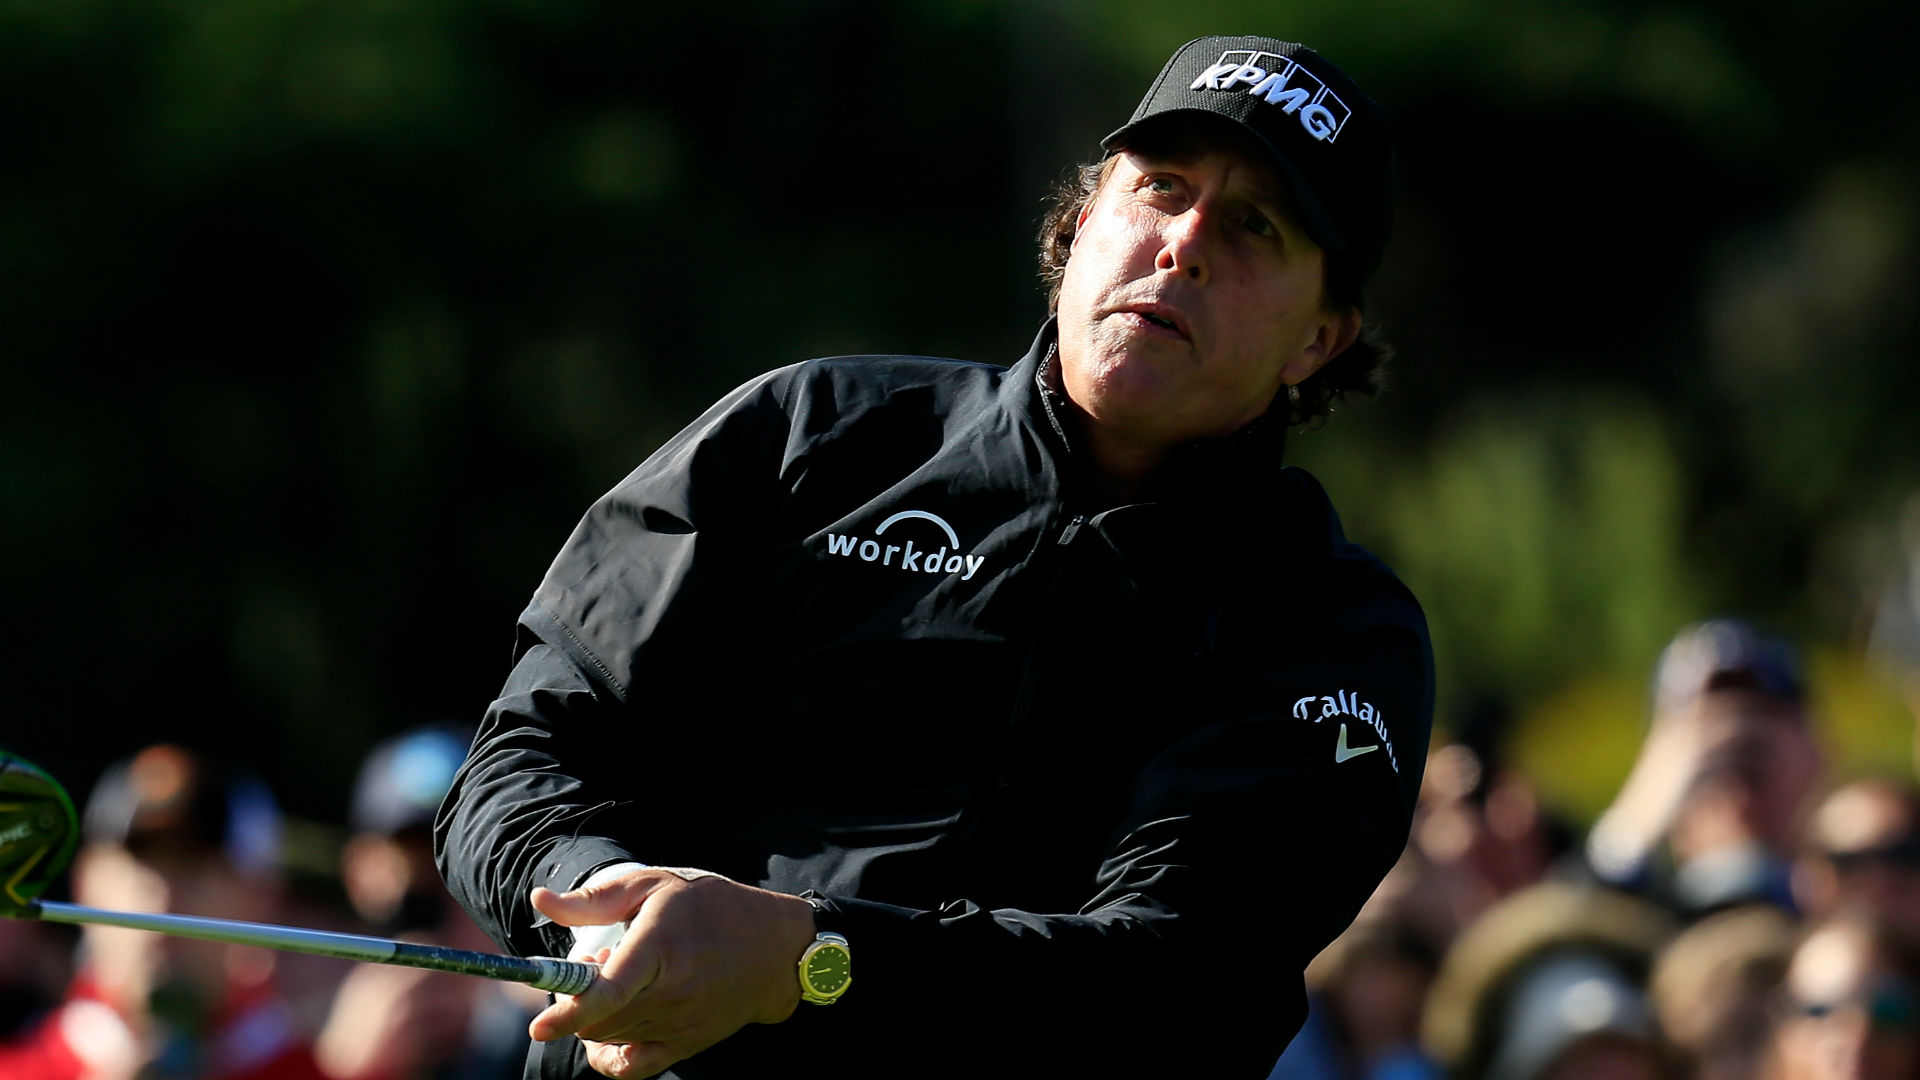 Phil Mickelson praises Paul Casey after sealing Pebble Beach win